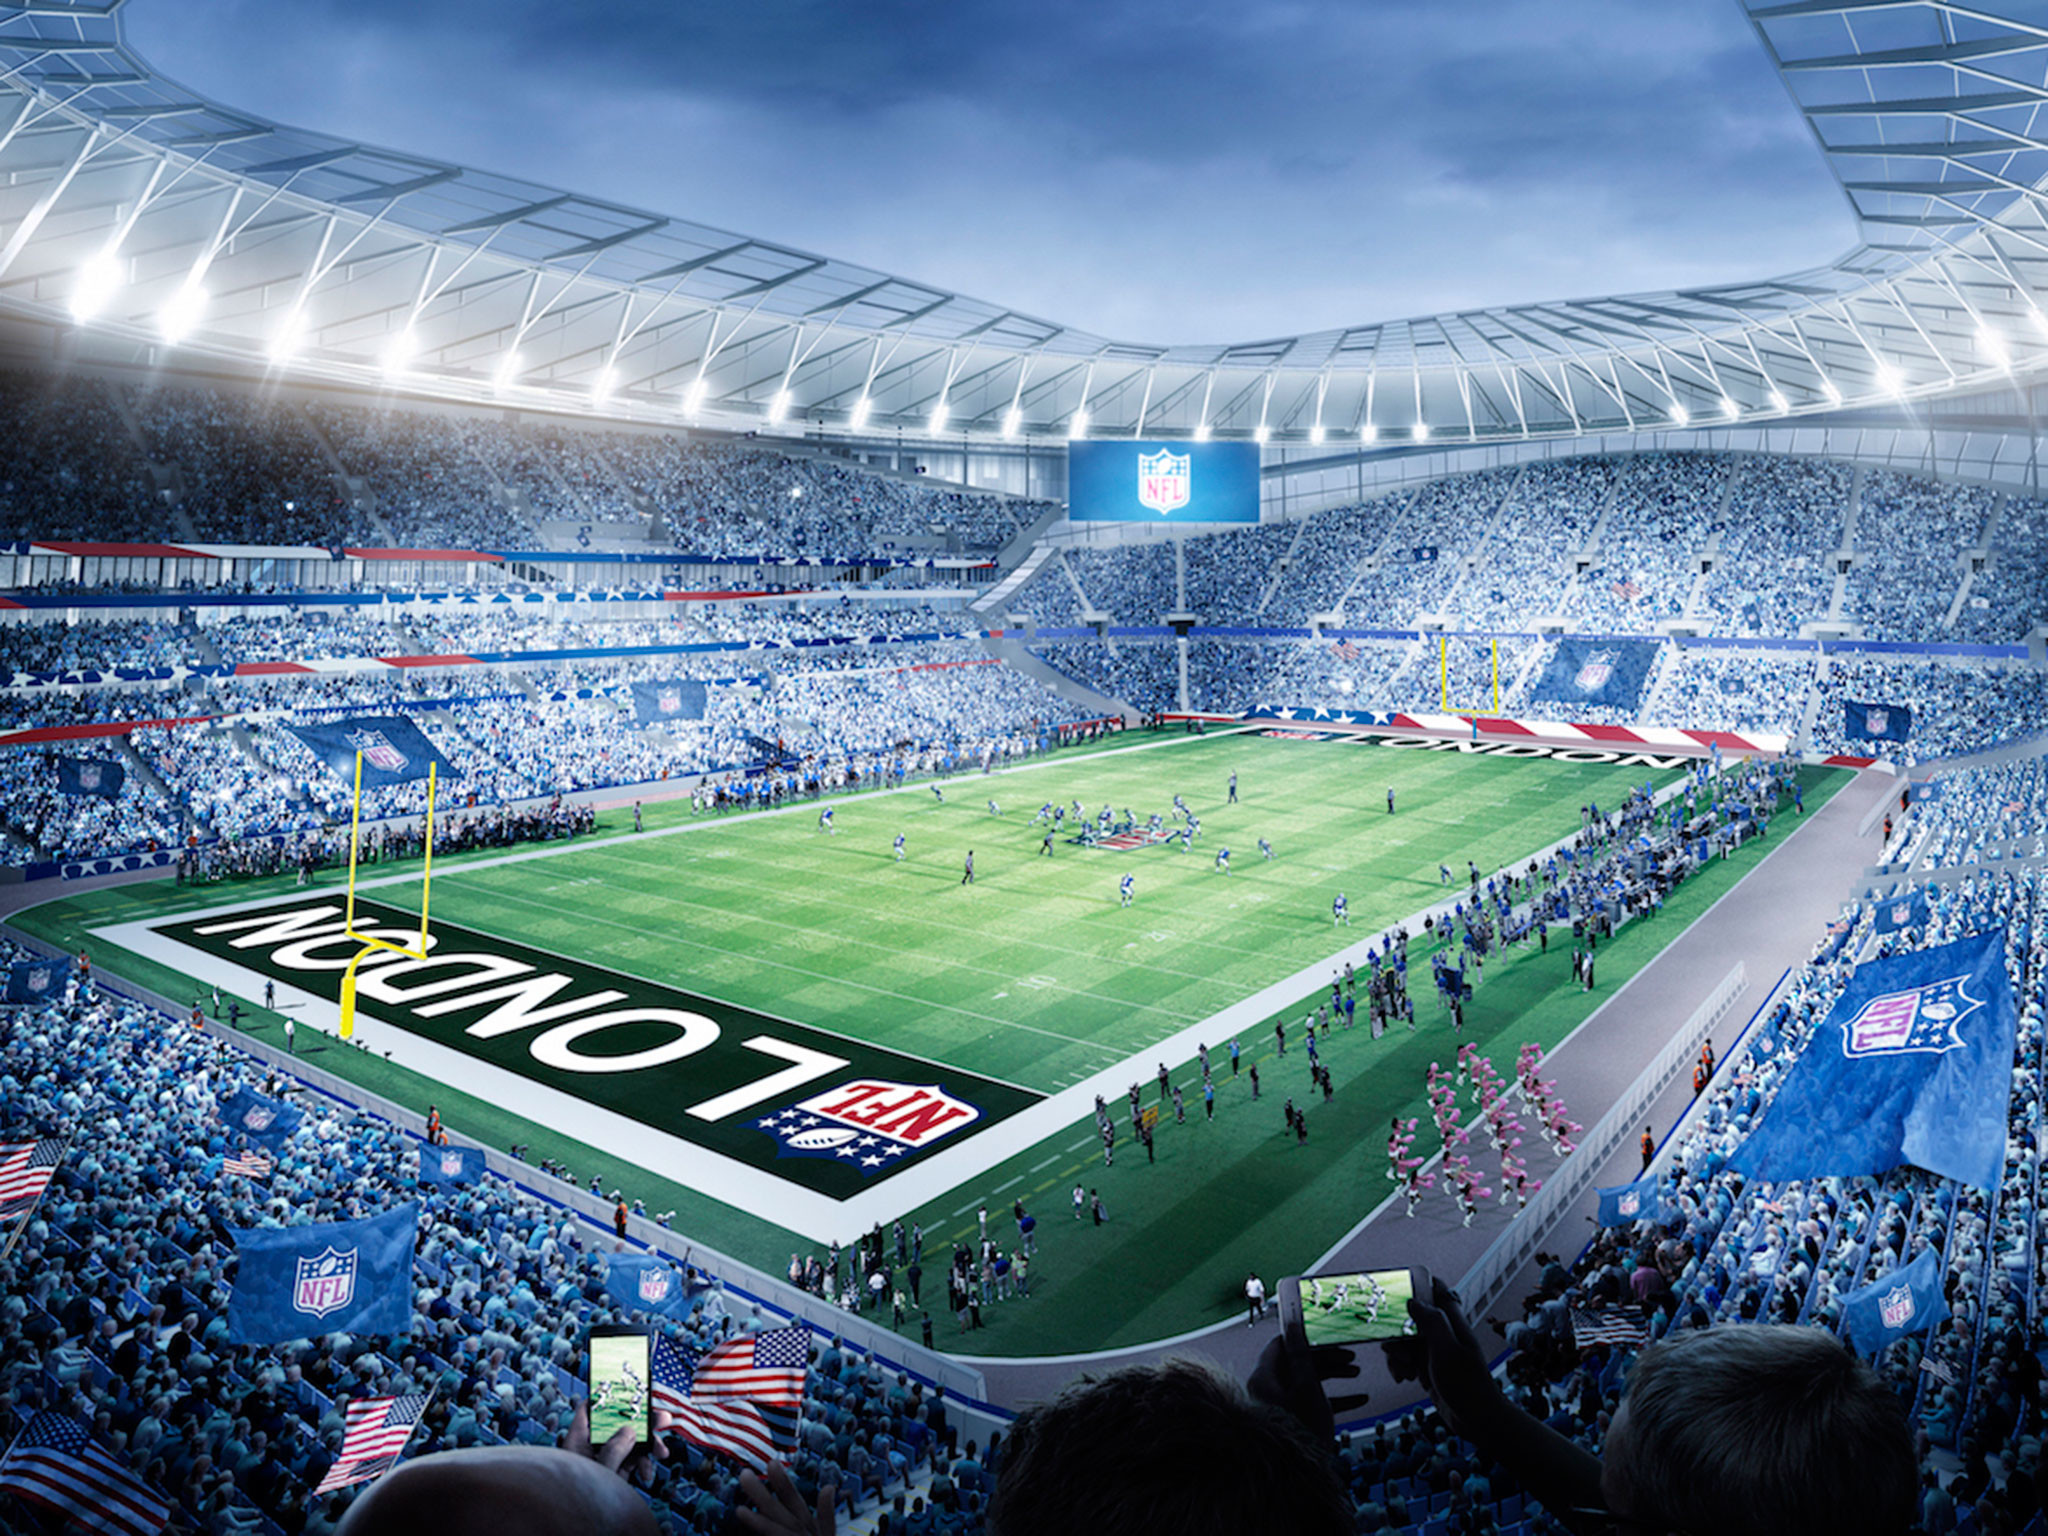 Tottenham stadium: Spurs reach 10-year agreement to host NFL games from  2018 as new ground will have large attendance than Arsenal   The Independent